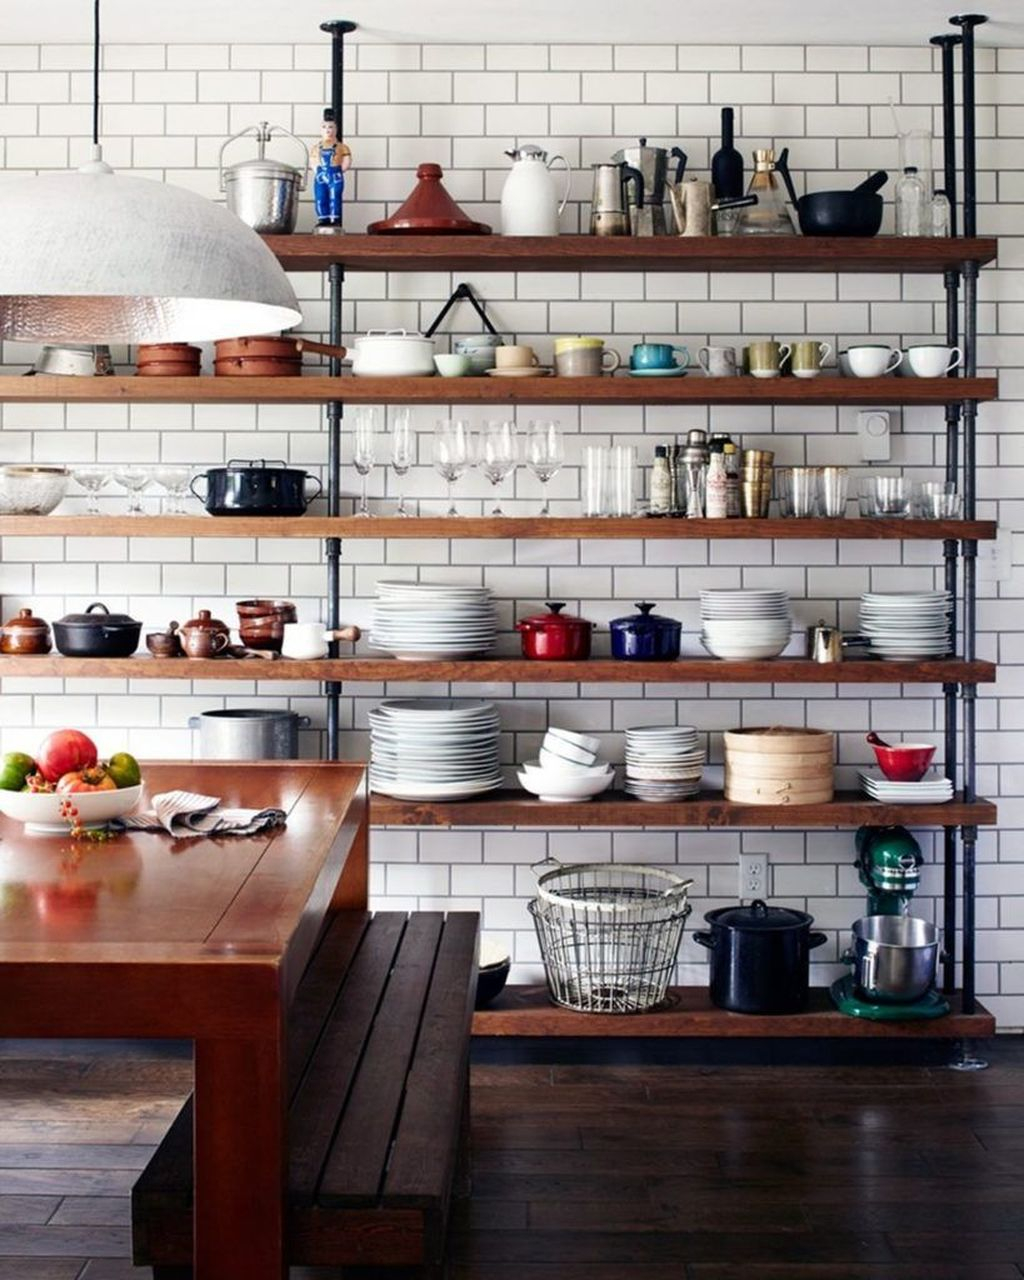 43 Wonderful Industrial Kitchen Shelf Design Ideas To Organize Your Kitchen Homishome